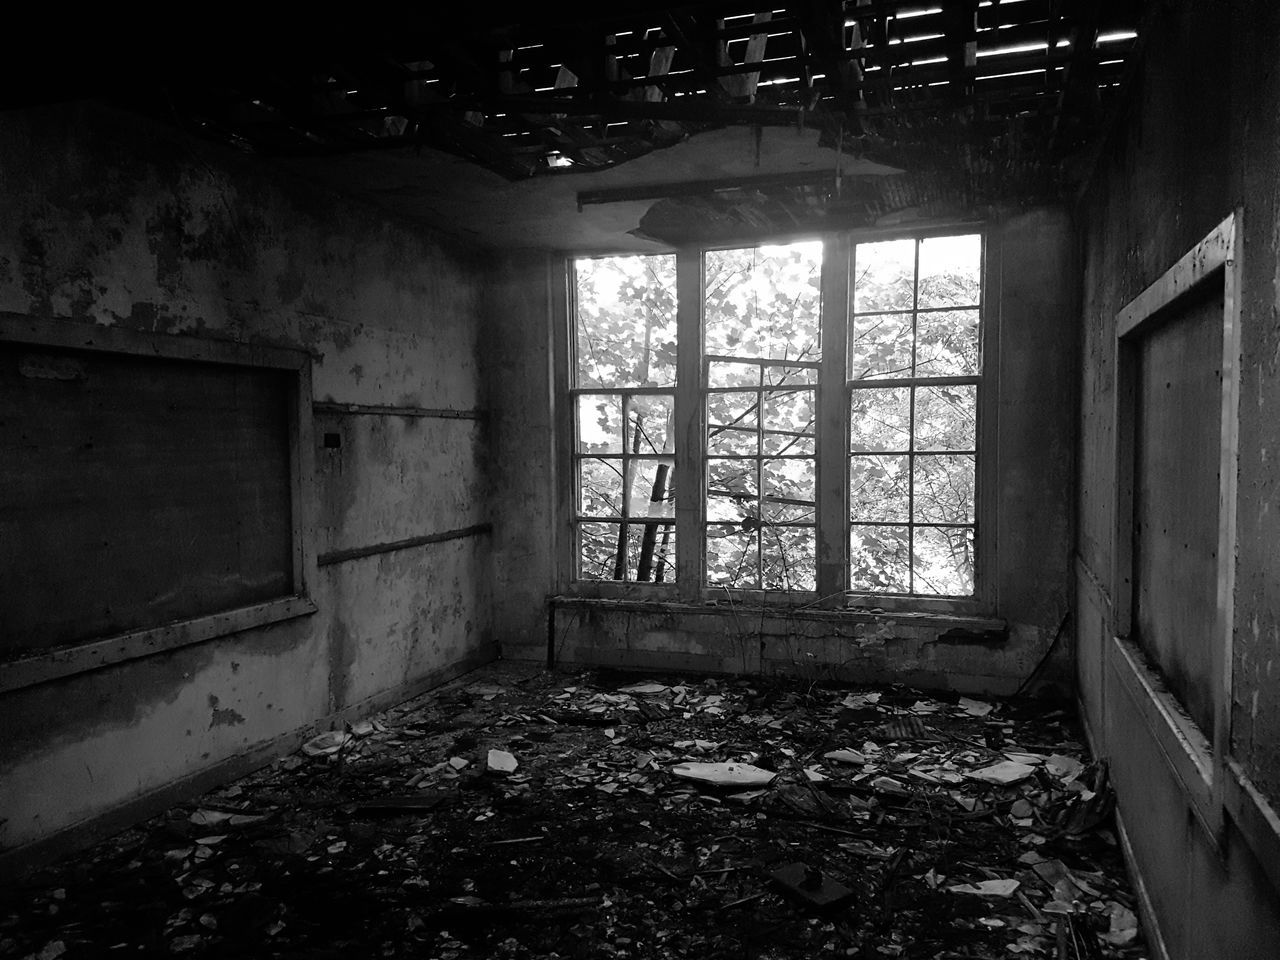 abandoned, damaged, window, indoors, architecture, built structure, destruction, day, no people, home interior, bad condition, rubble